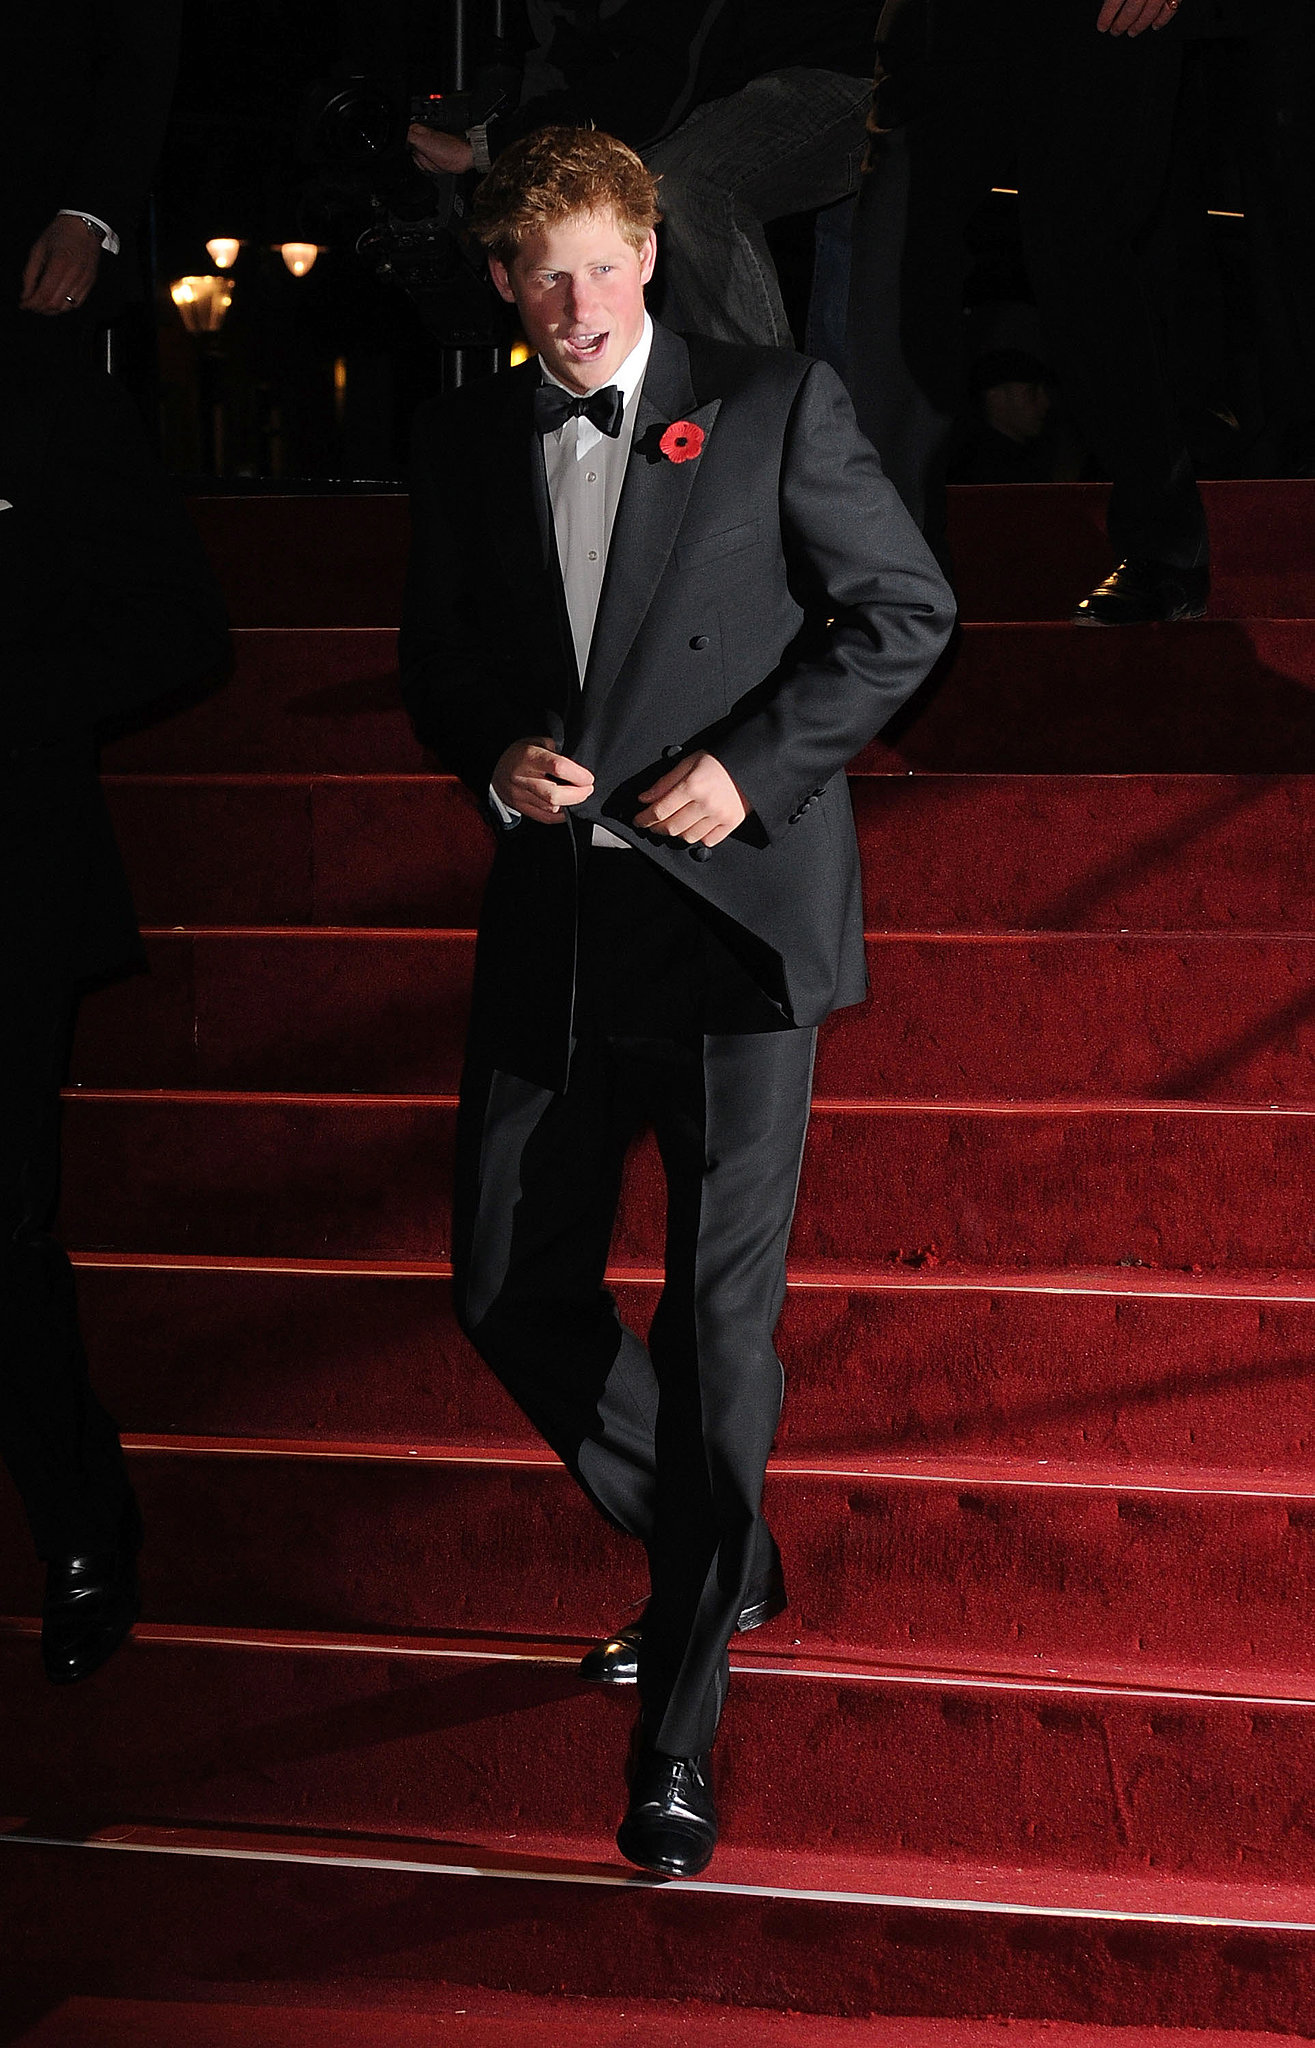 Prince Harry dressed up in a tux for the 2008 royal premiere of Quantum of Solace in London.